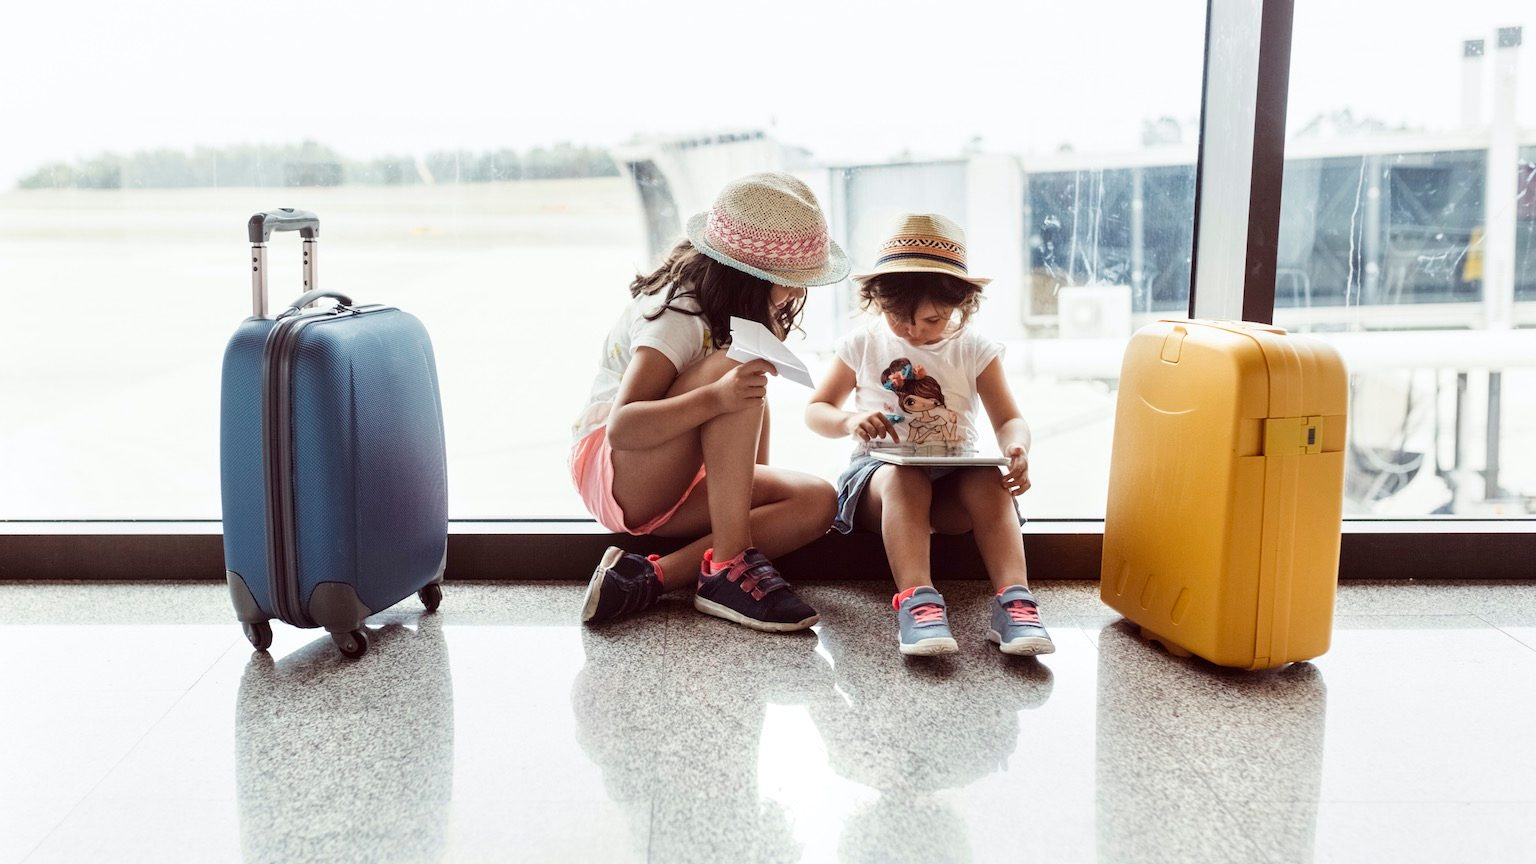 Asturias, Spain, two little girls waiting at the airport terminal